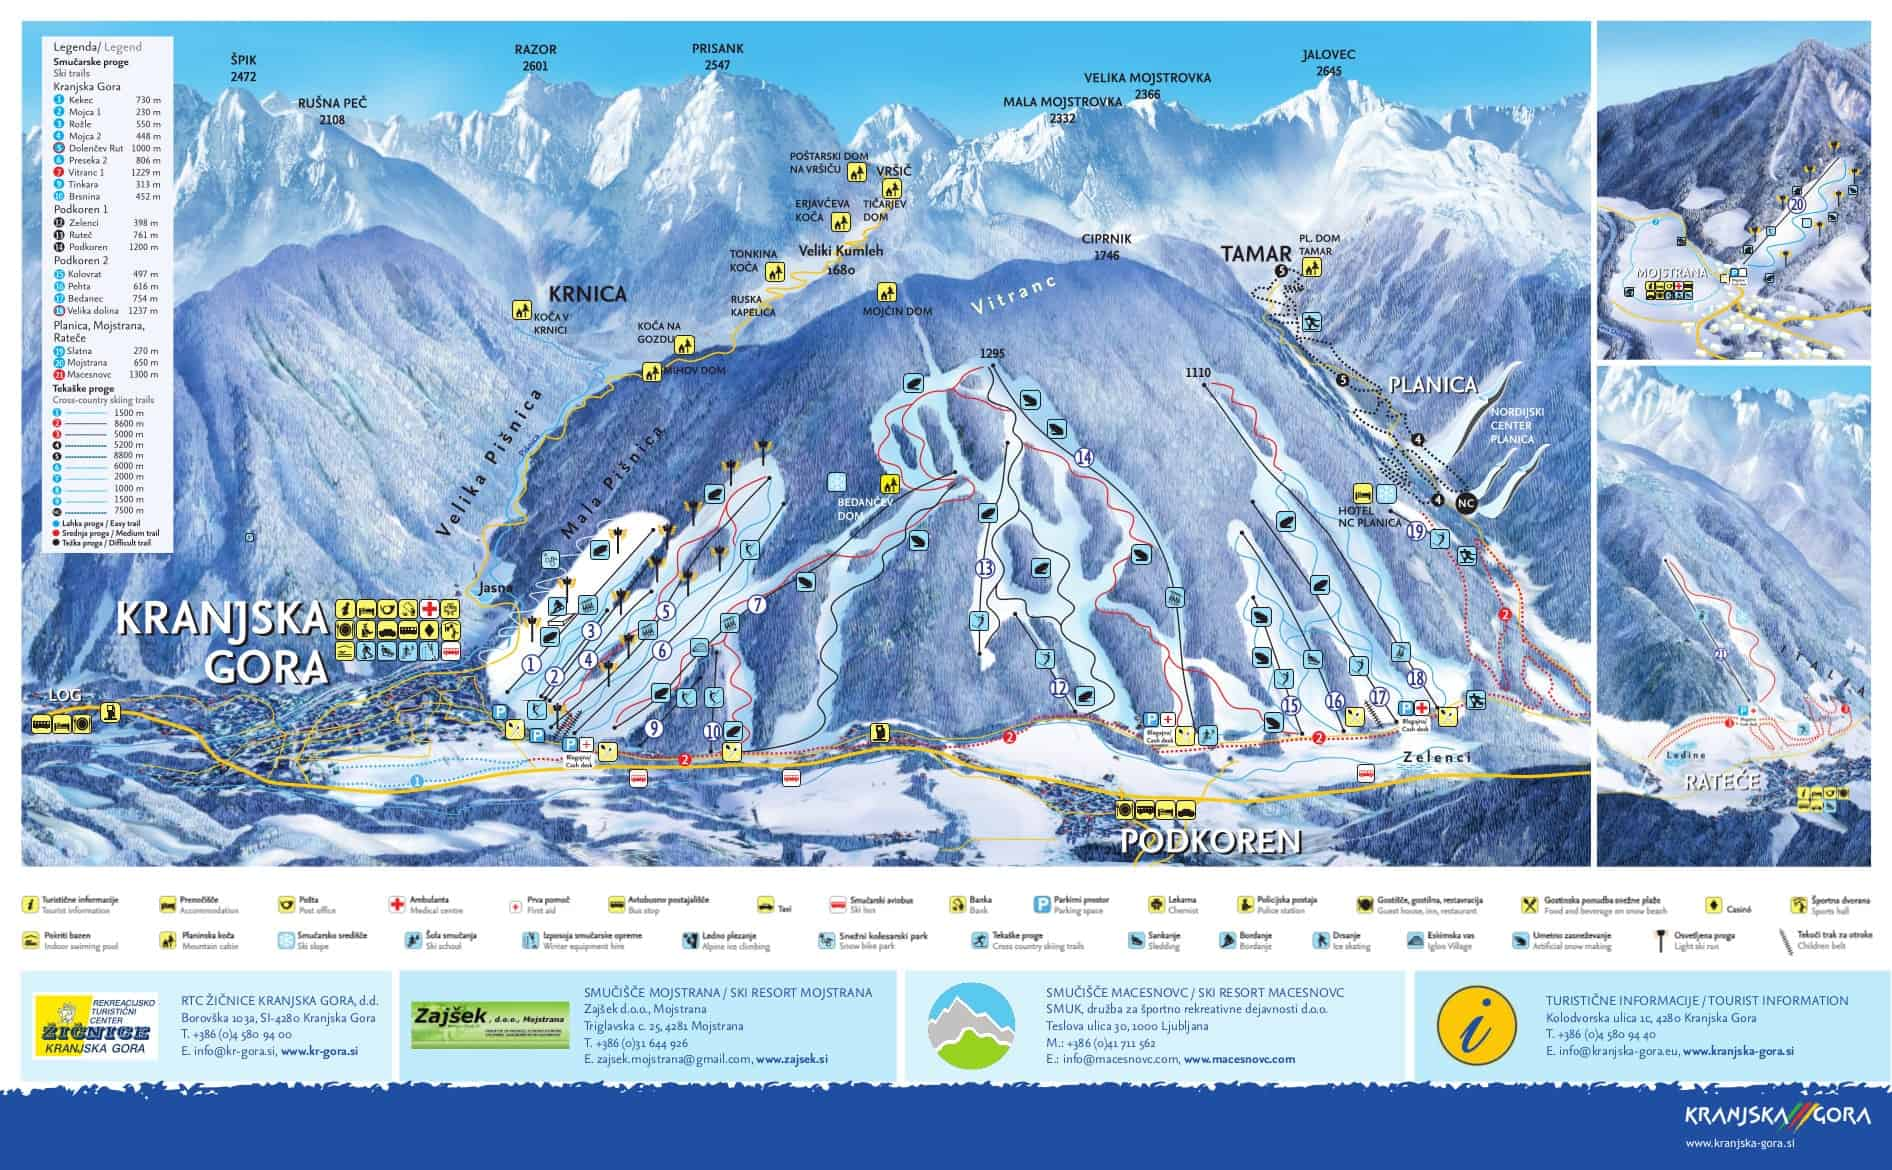 Kranjska Gora Ski Trail Map 2018